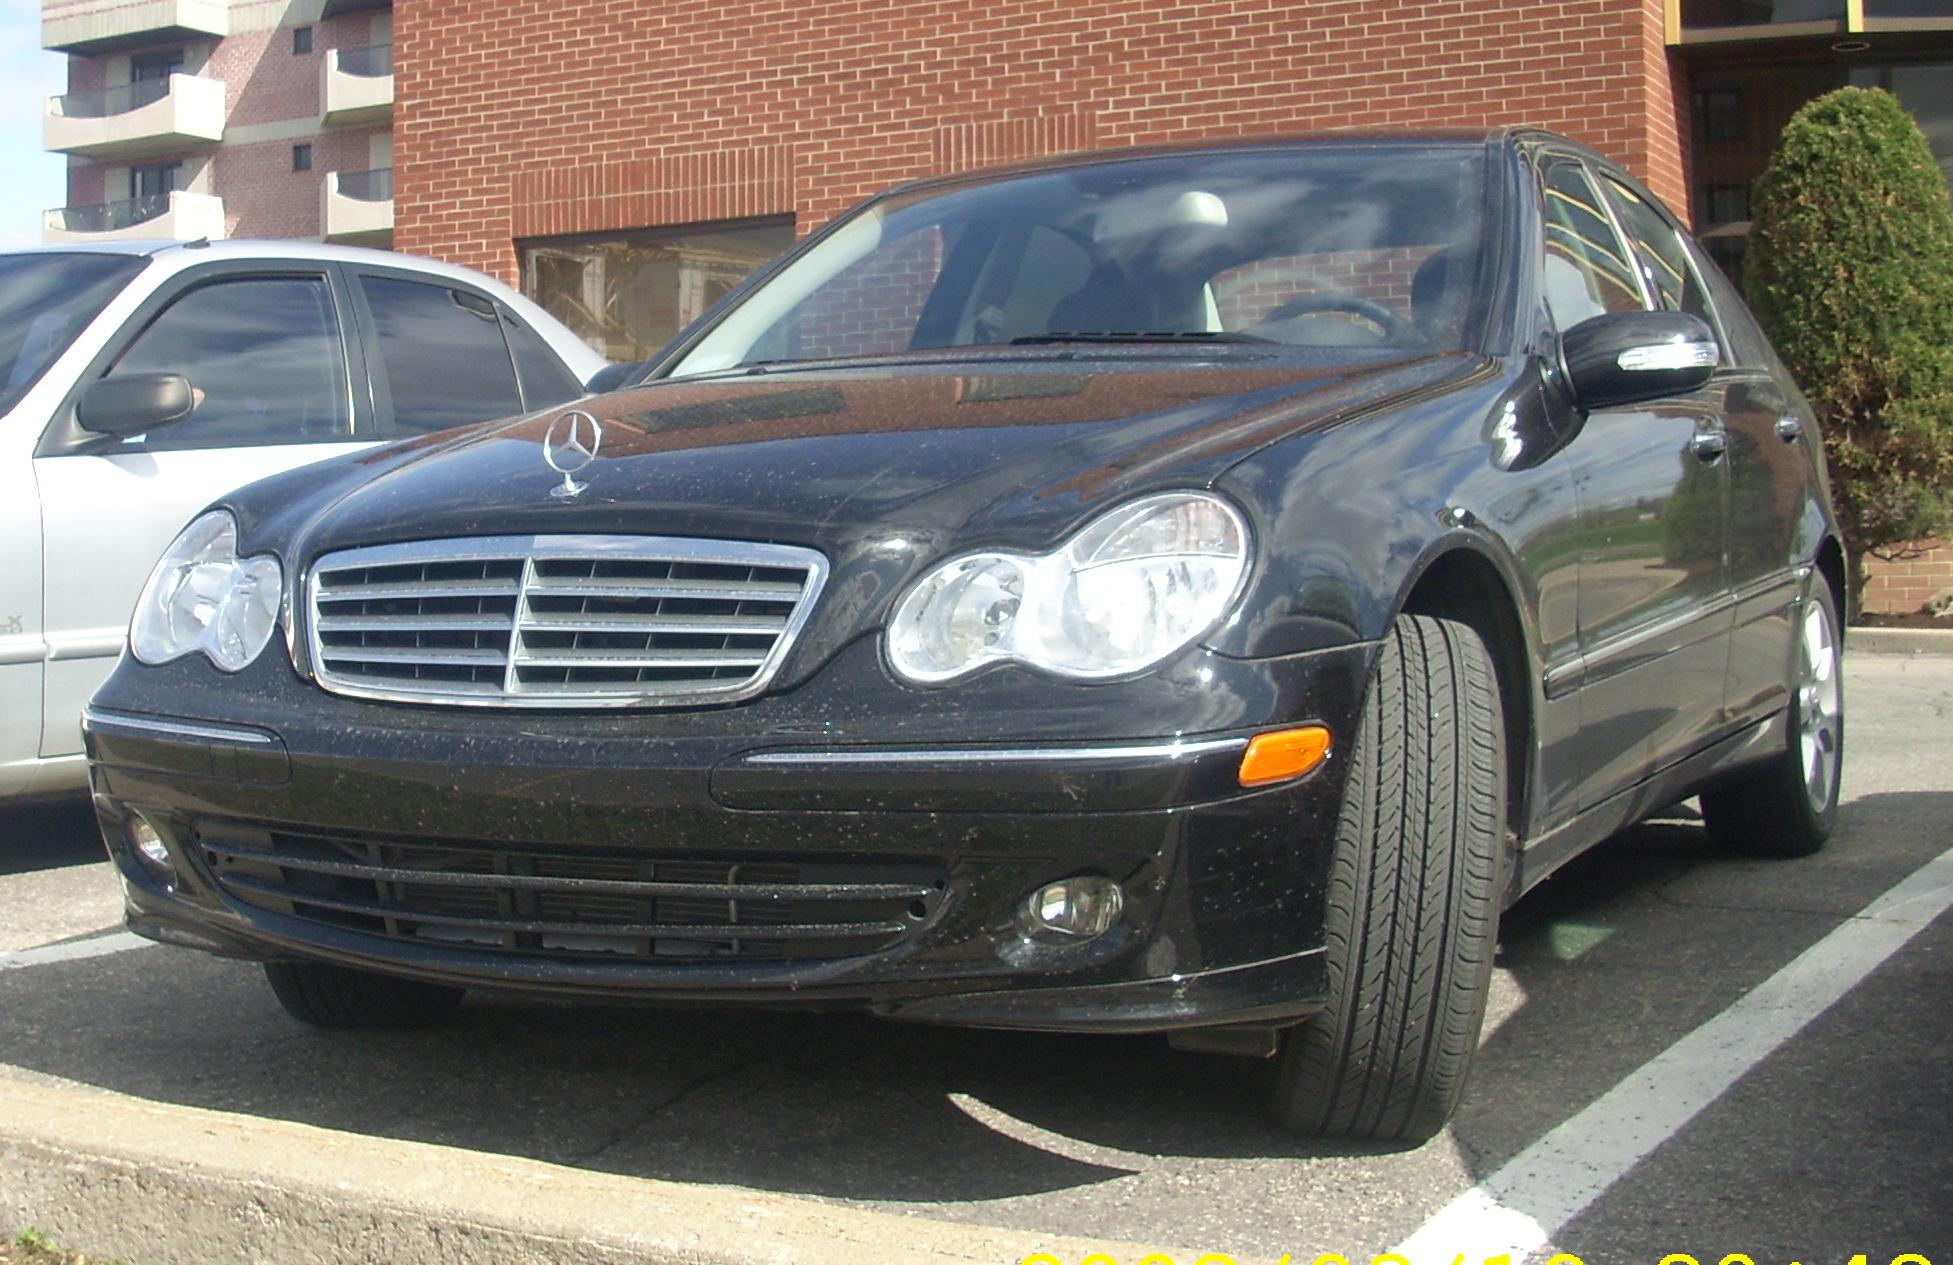 Wonderful File:2005 07 Mercedes Benz C Class Sedan.JPG